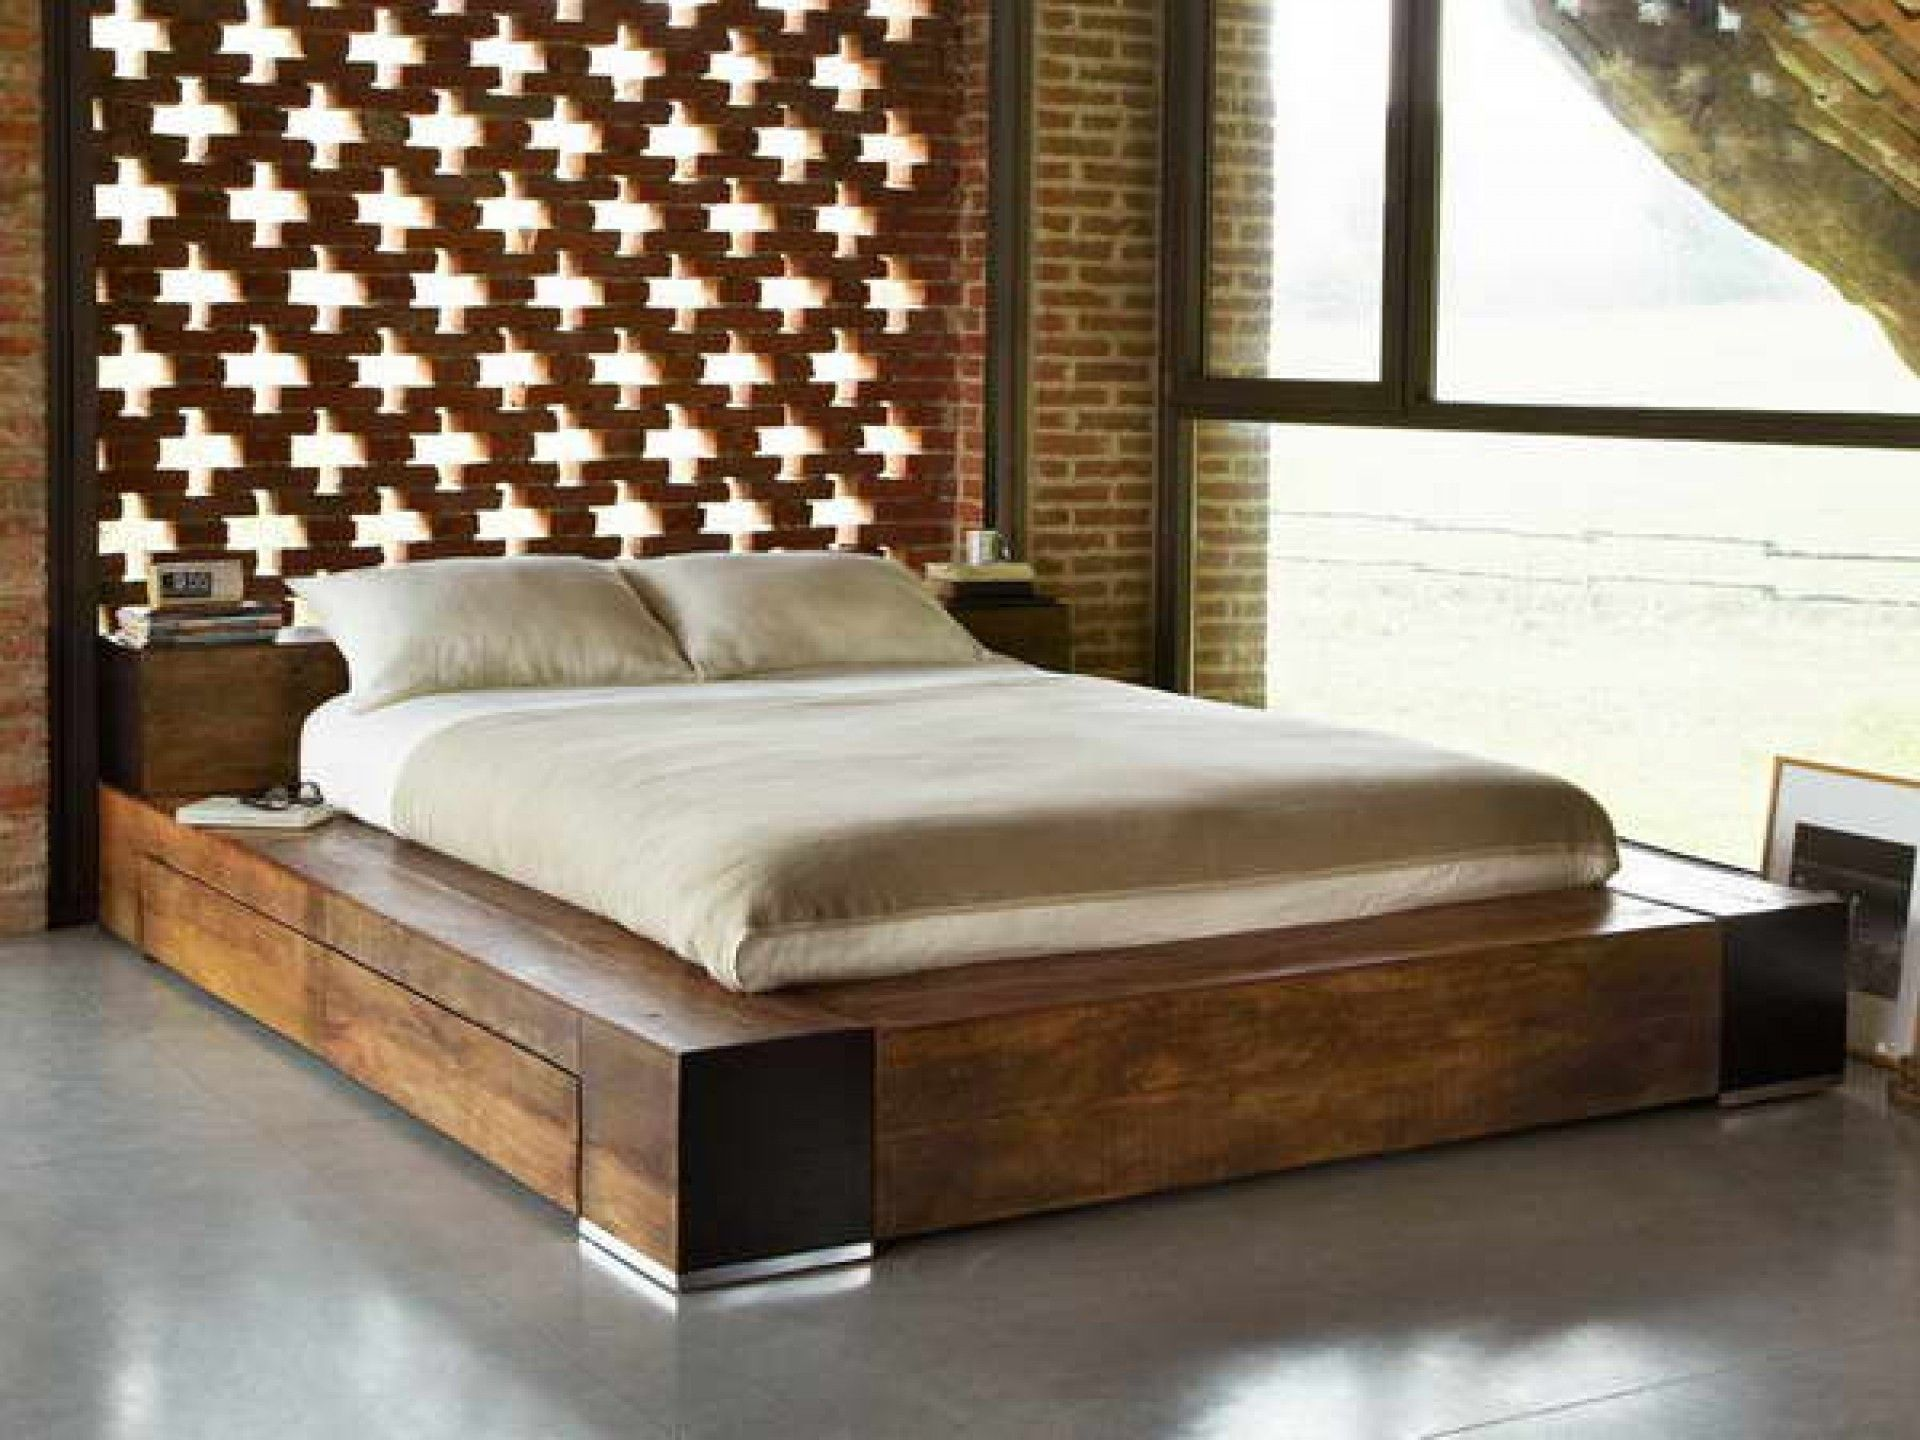 Bed frame design with drawers - Ristic Wooden Bed Frame Drawers Google Search